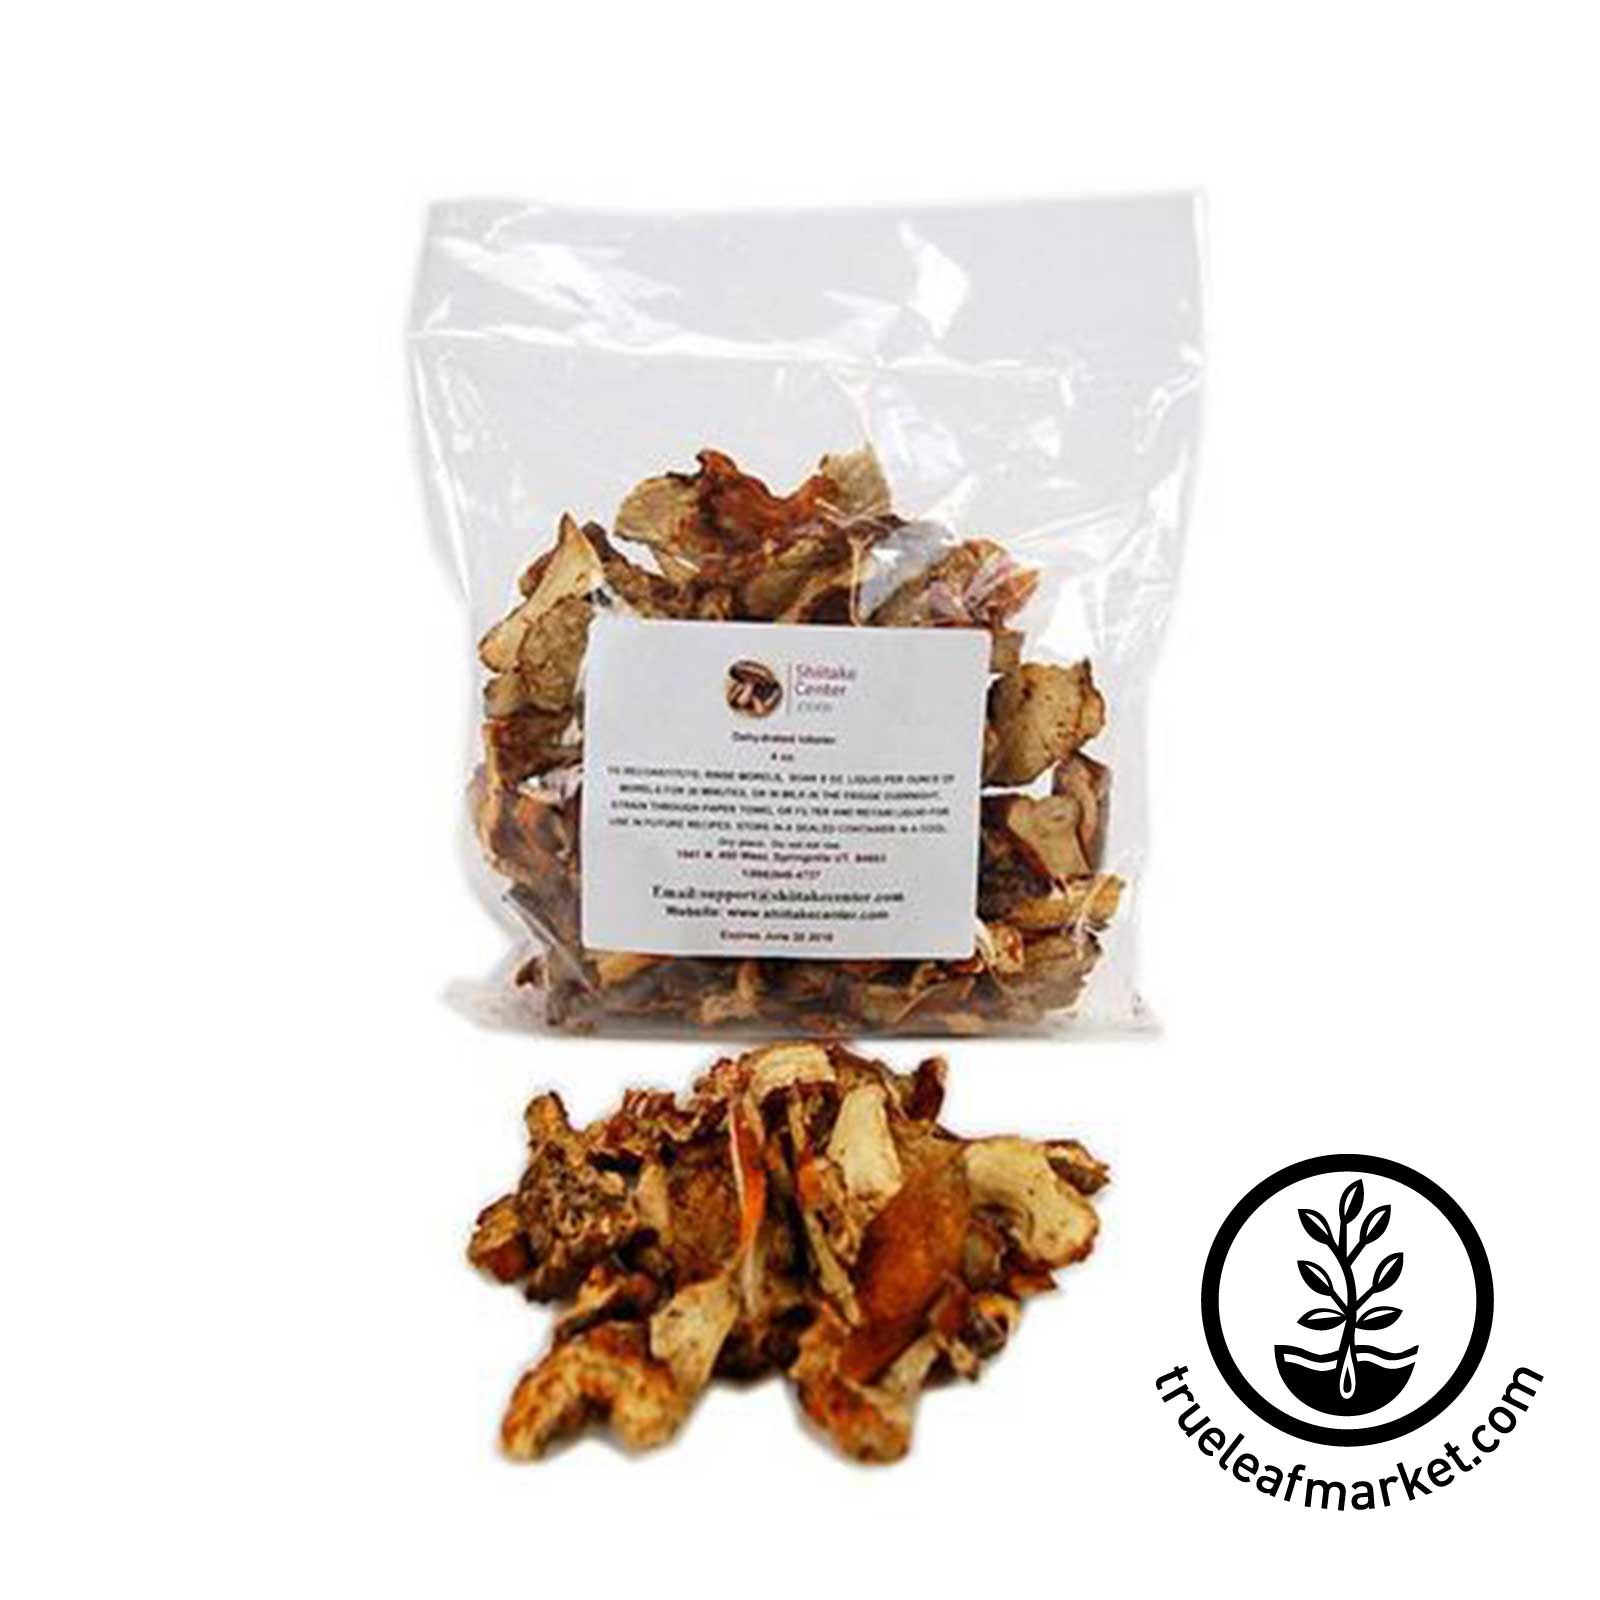 Dehydrated Lobster Mushrooms dried, dehydrated, lobster mushroom, mushrooms, fungi